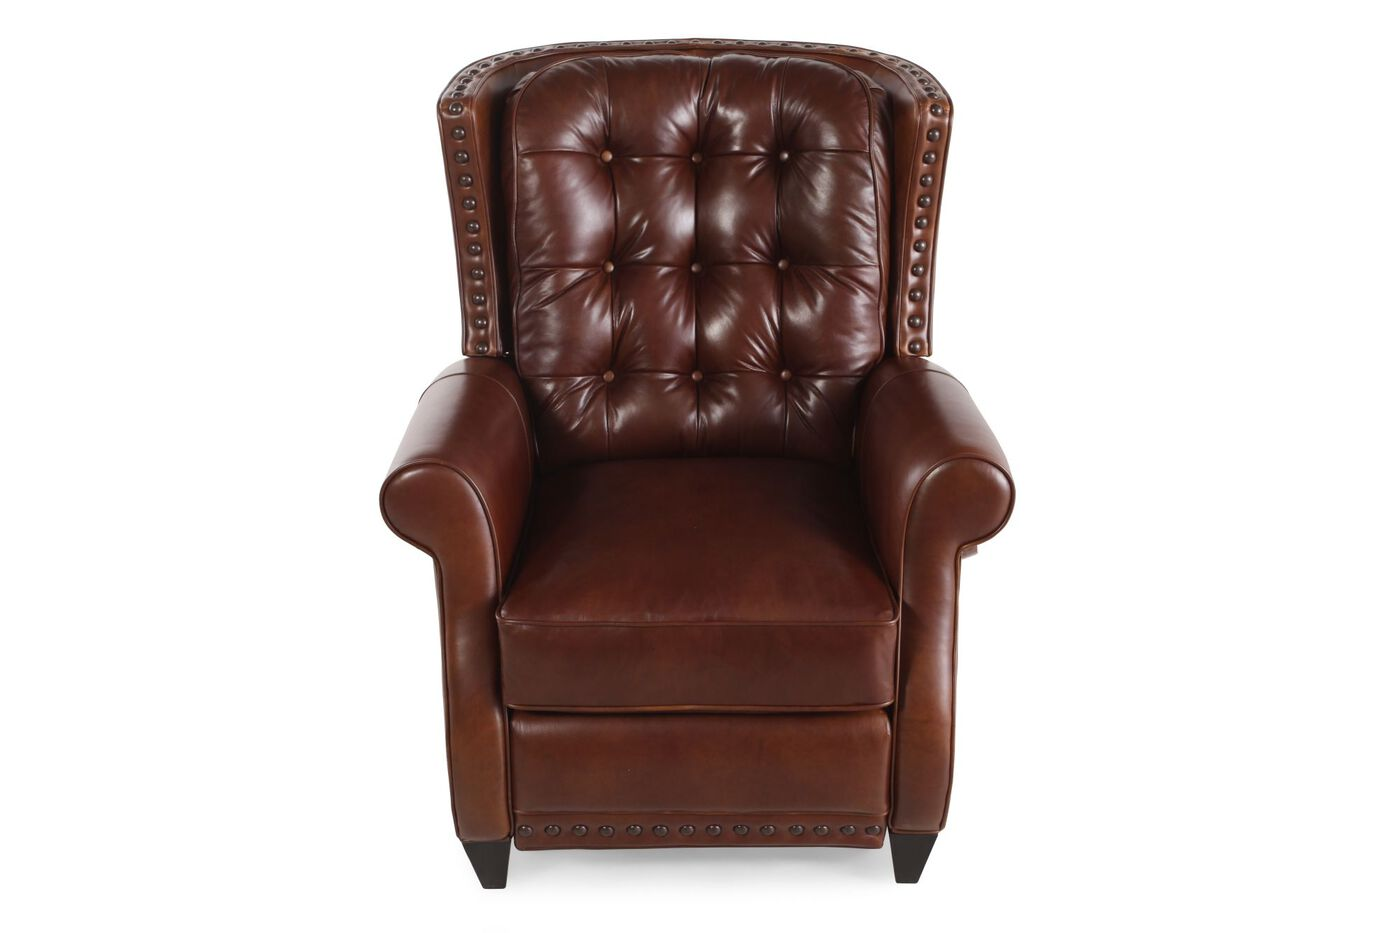 Bernhardt pierce leather recliner mathis brothers furniture for Where to buy bernhardt furniture online